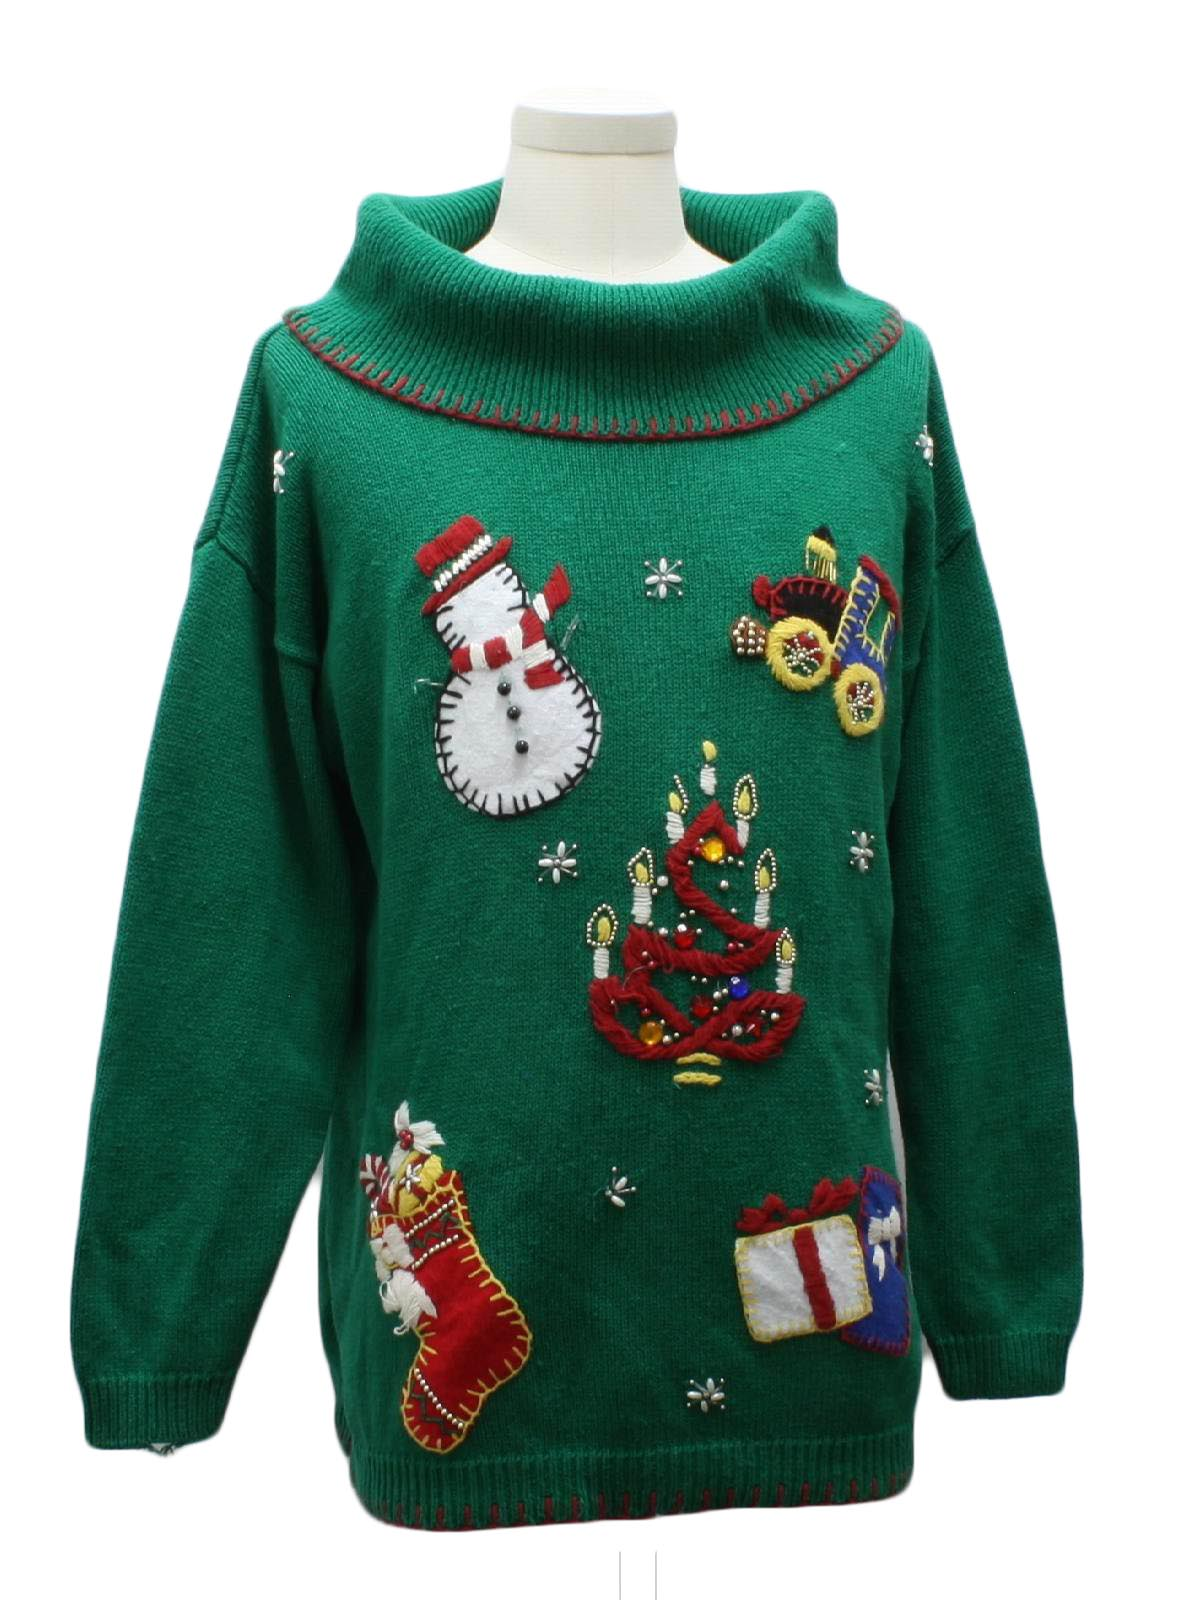 Womens Ugly Christmas Sweater: -Victoria Jones- Womens green background ramie cotton blend longsleeve pullover ugly Christmas sweater, bulky turtle neck ...